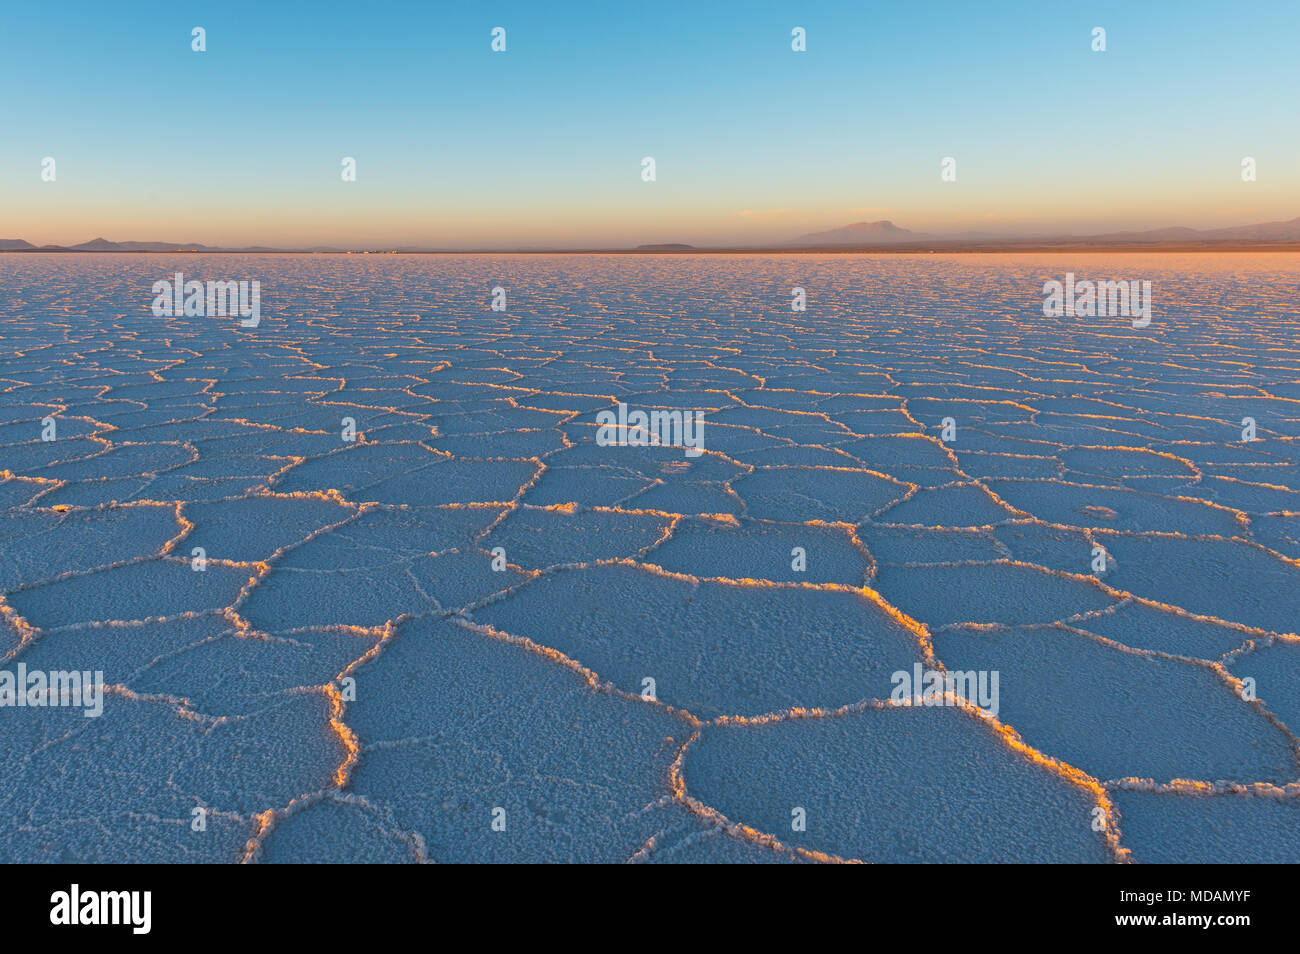 Sunset in the Uyuni salt flat (Salar de Uyuni) with the last sun rays shining on the mineral hexagon formations, Bolivia, South America. - Stock Image